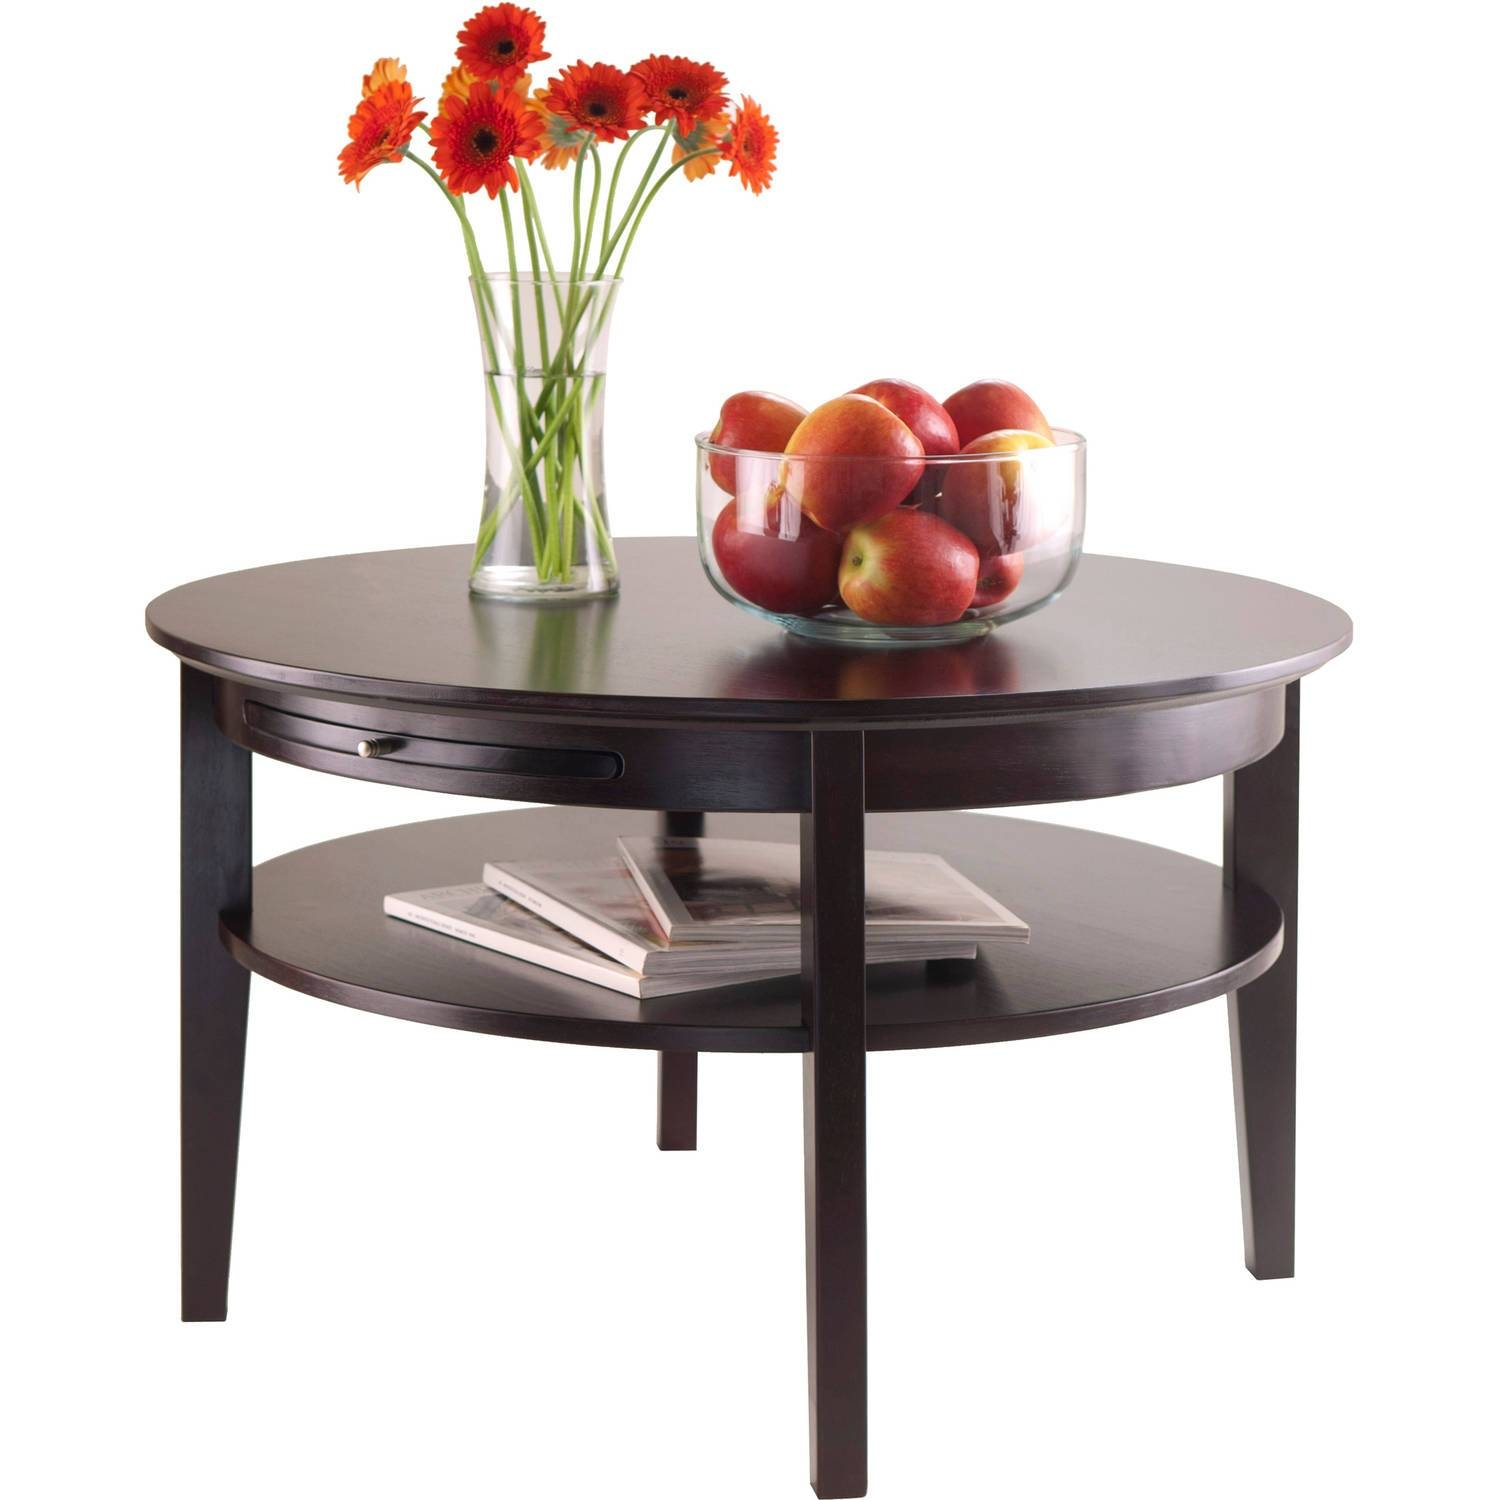 Amelia Round Coffee Table With Pull-Out Tray, Espresso - Walmart throughout Round Tray Coffee Tables (Image 1 of 30)